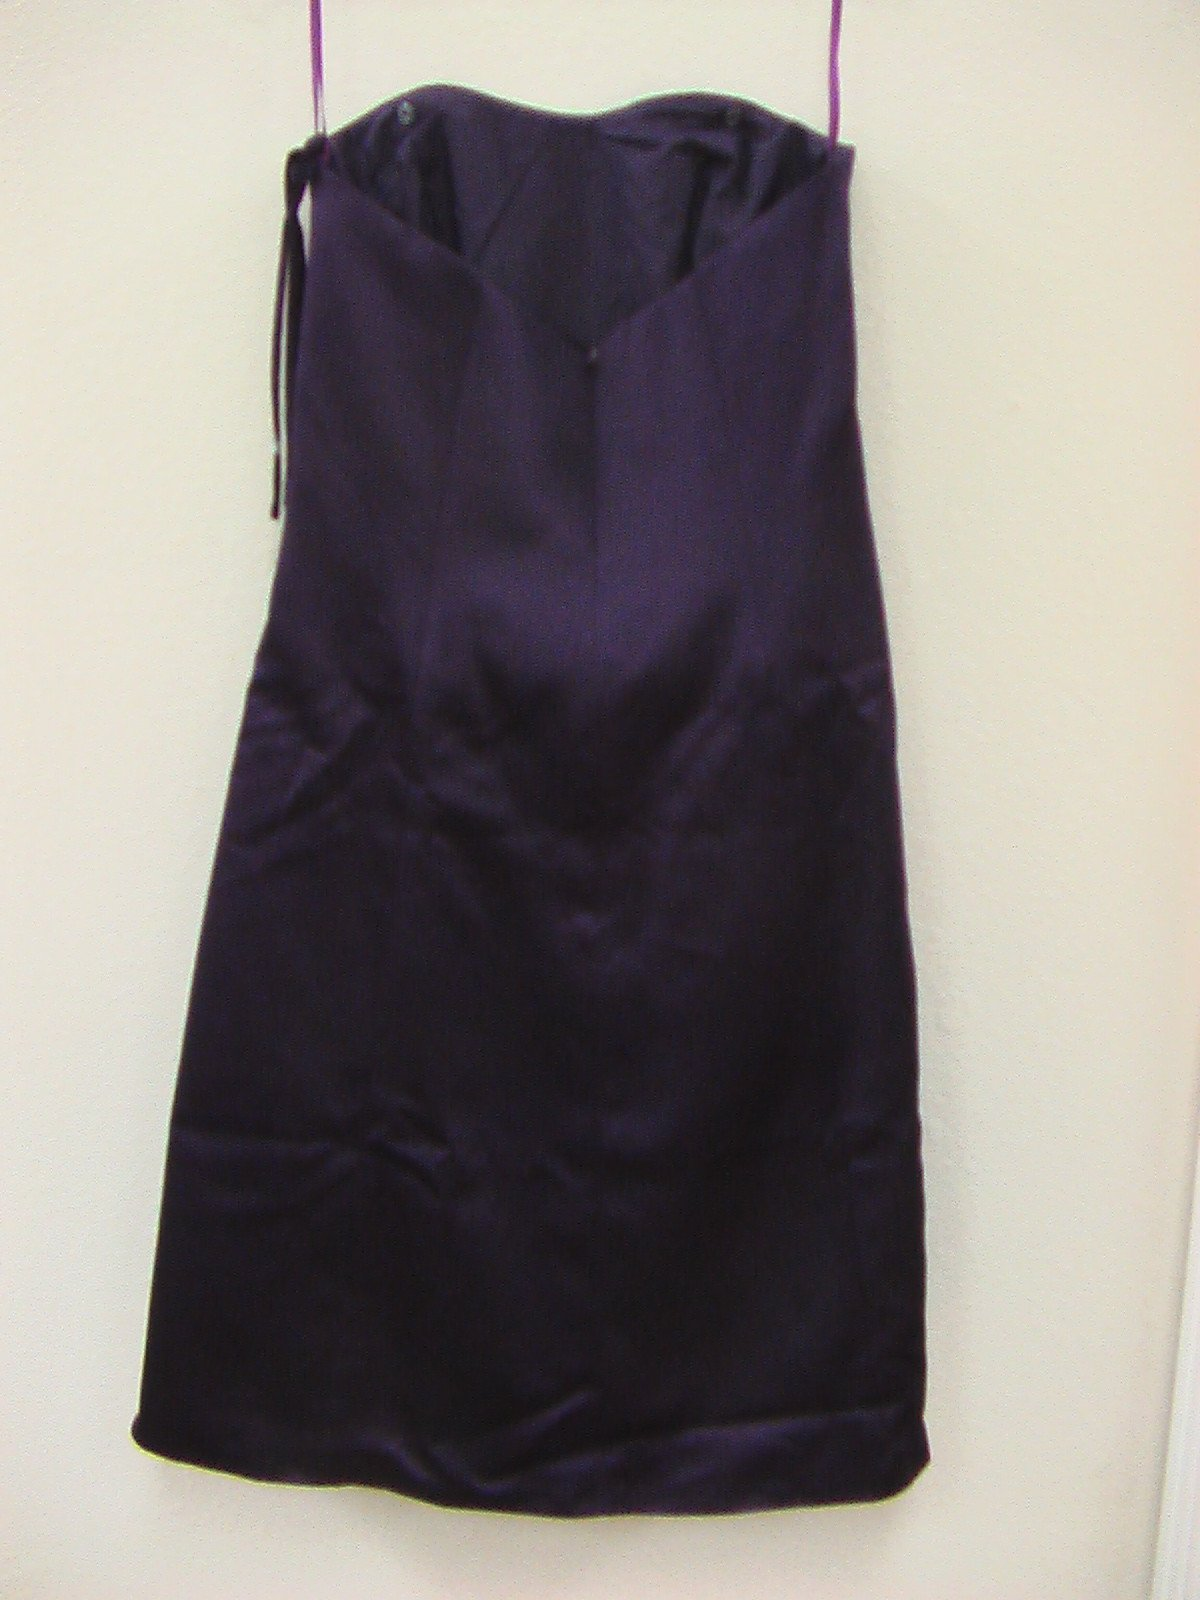 Impression Bridesmaid 1765 Eggplant 14 In Stock Bridesmaid Dress Formal Gown-NEW - Tom's Bridal